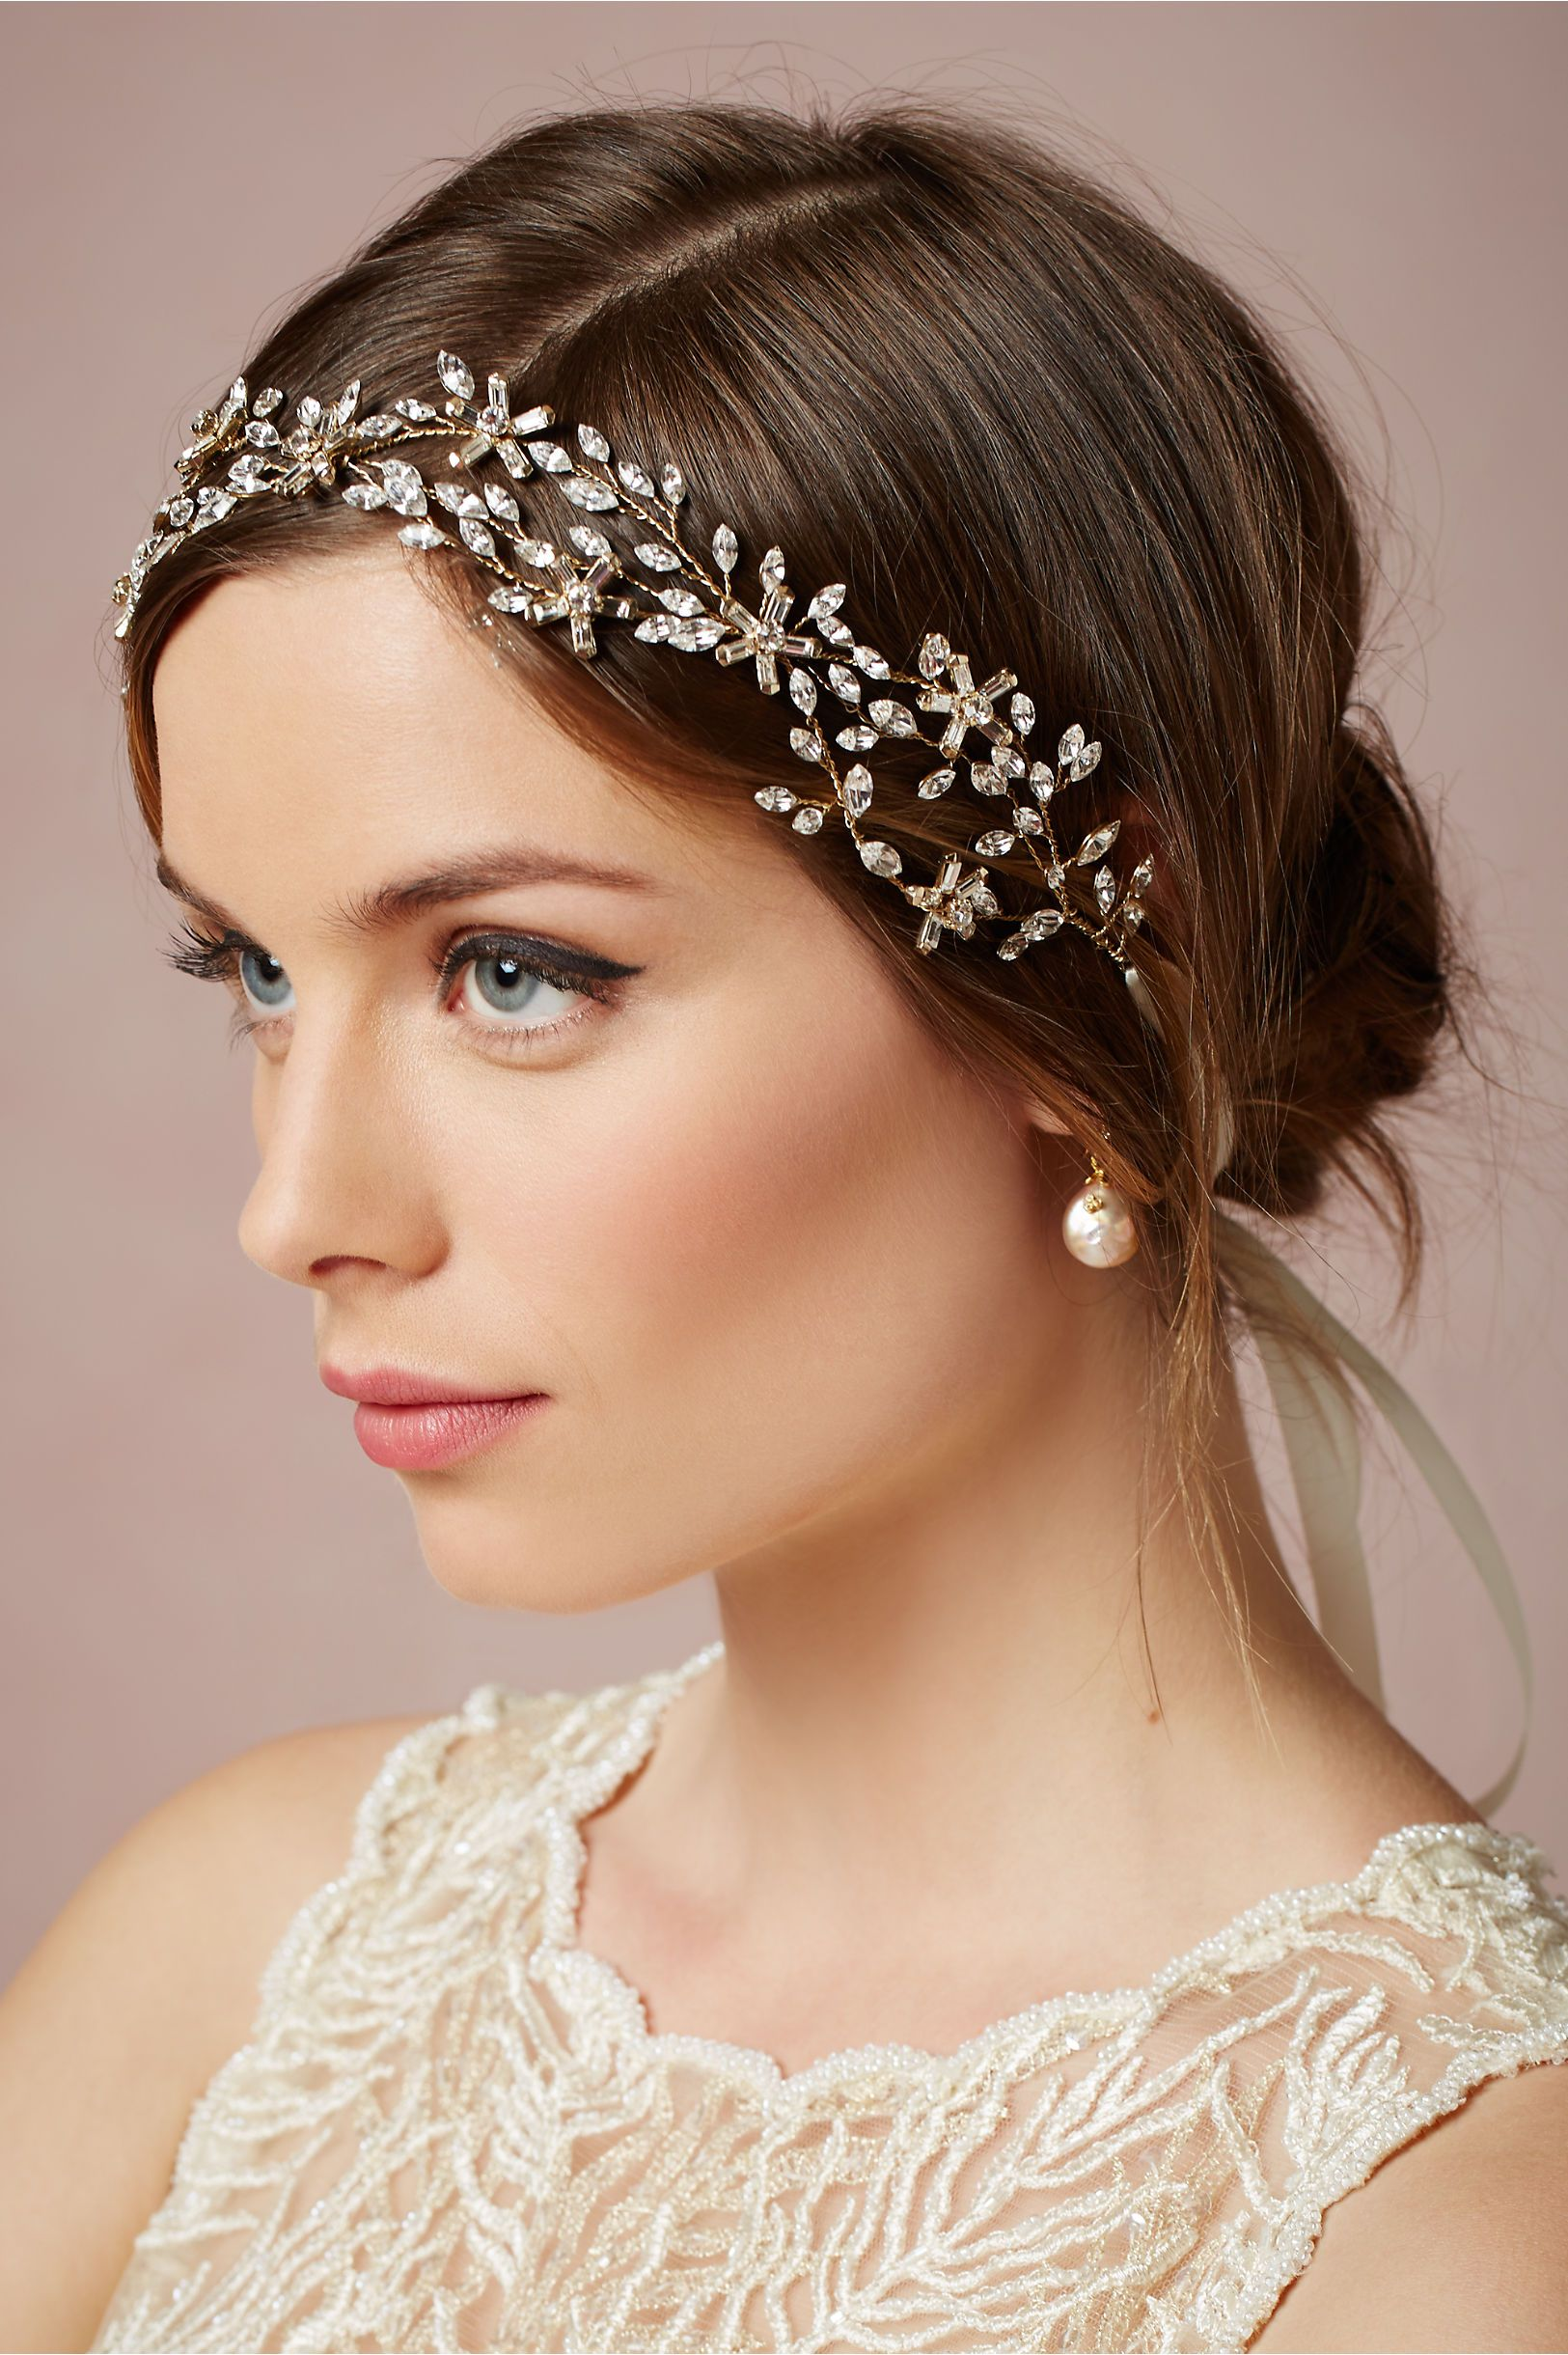 honeysuckle headband from bhldn | the bohemian bride